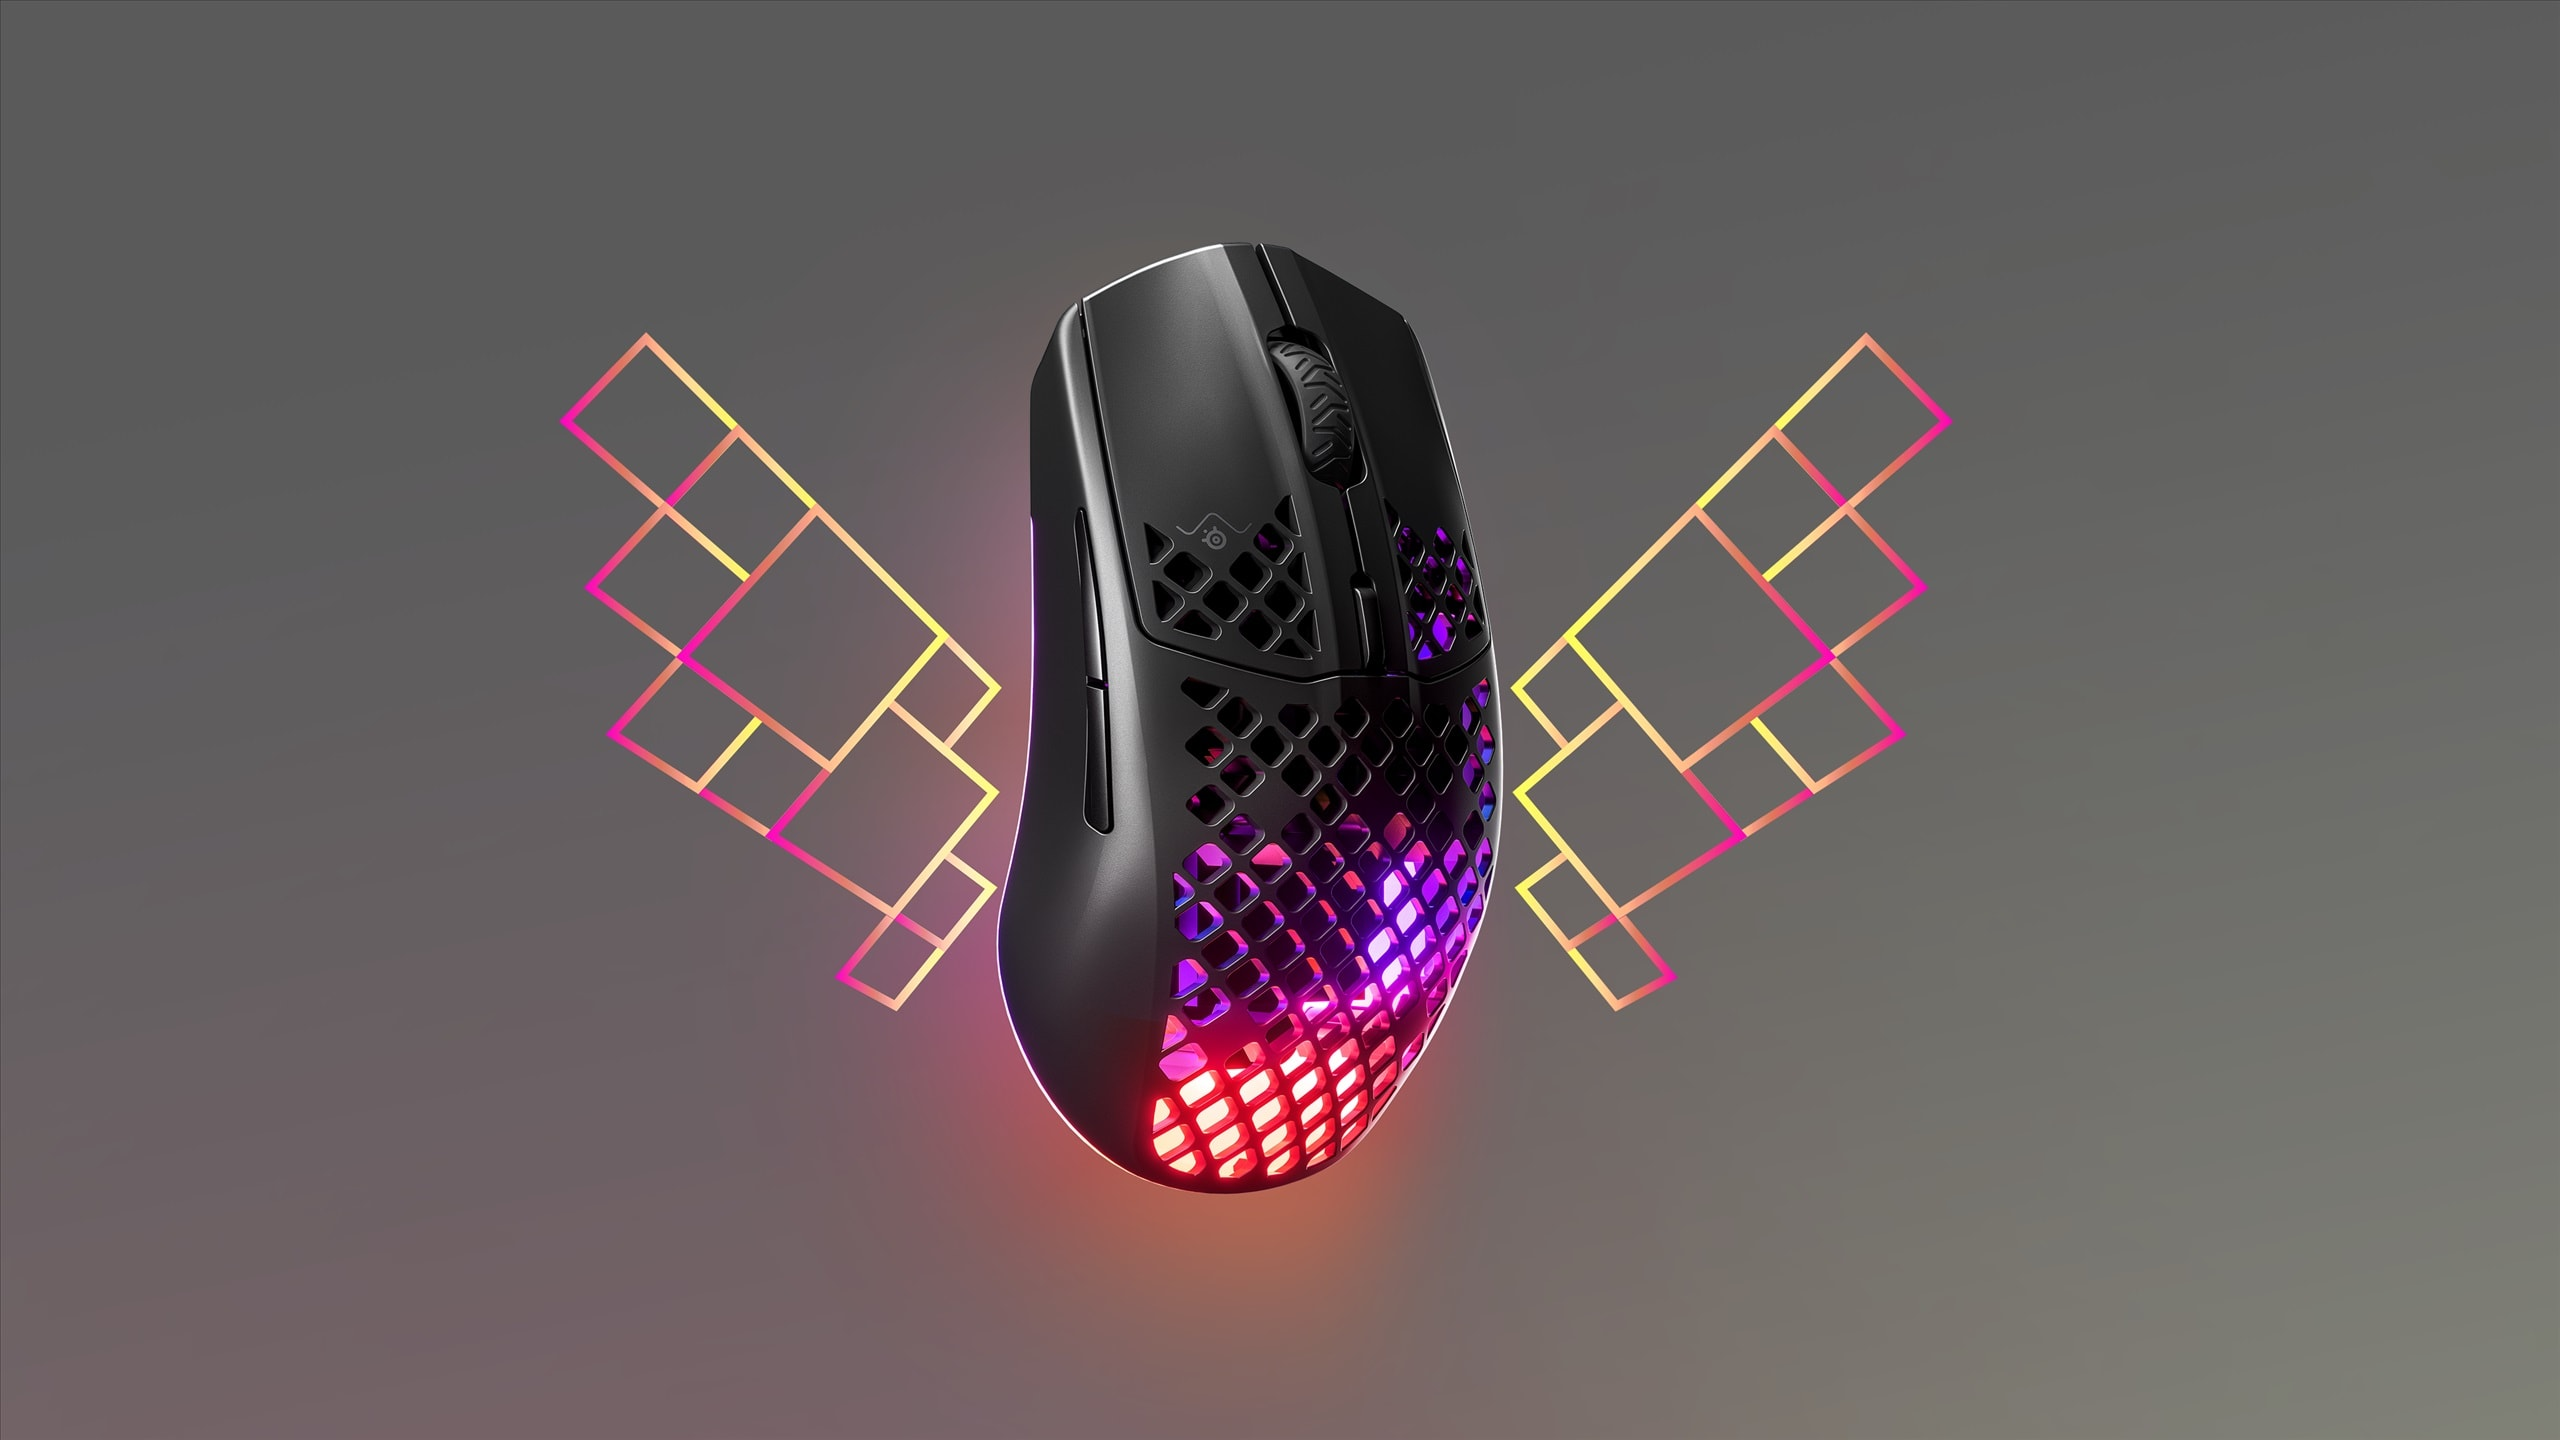 Incredibly light, 66 grams, wireless gaming mouse – SteelSeries Aerox 3 Wireless Review